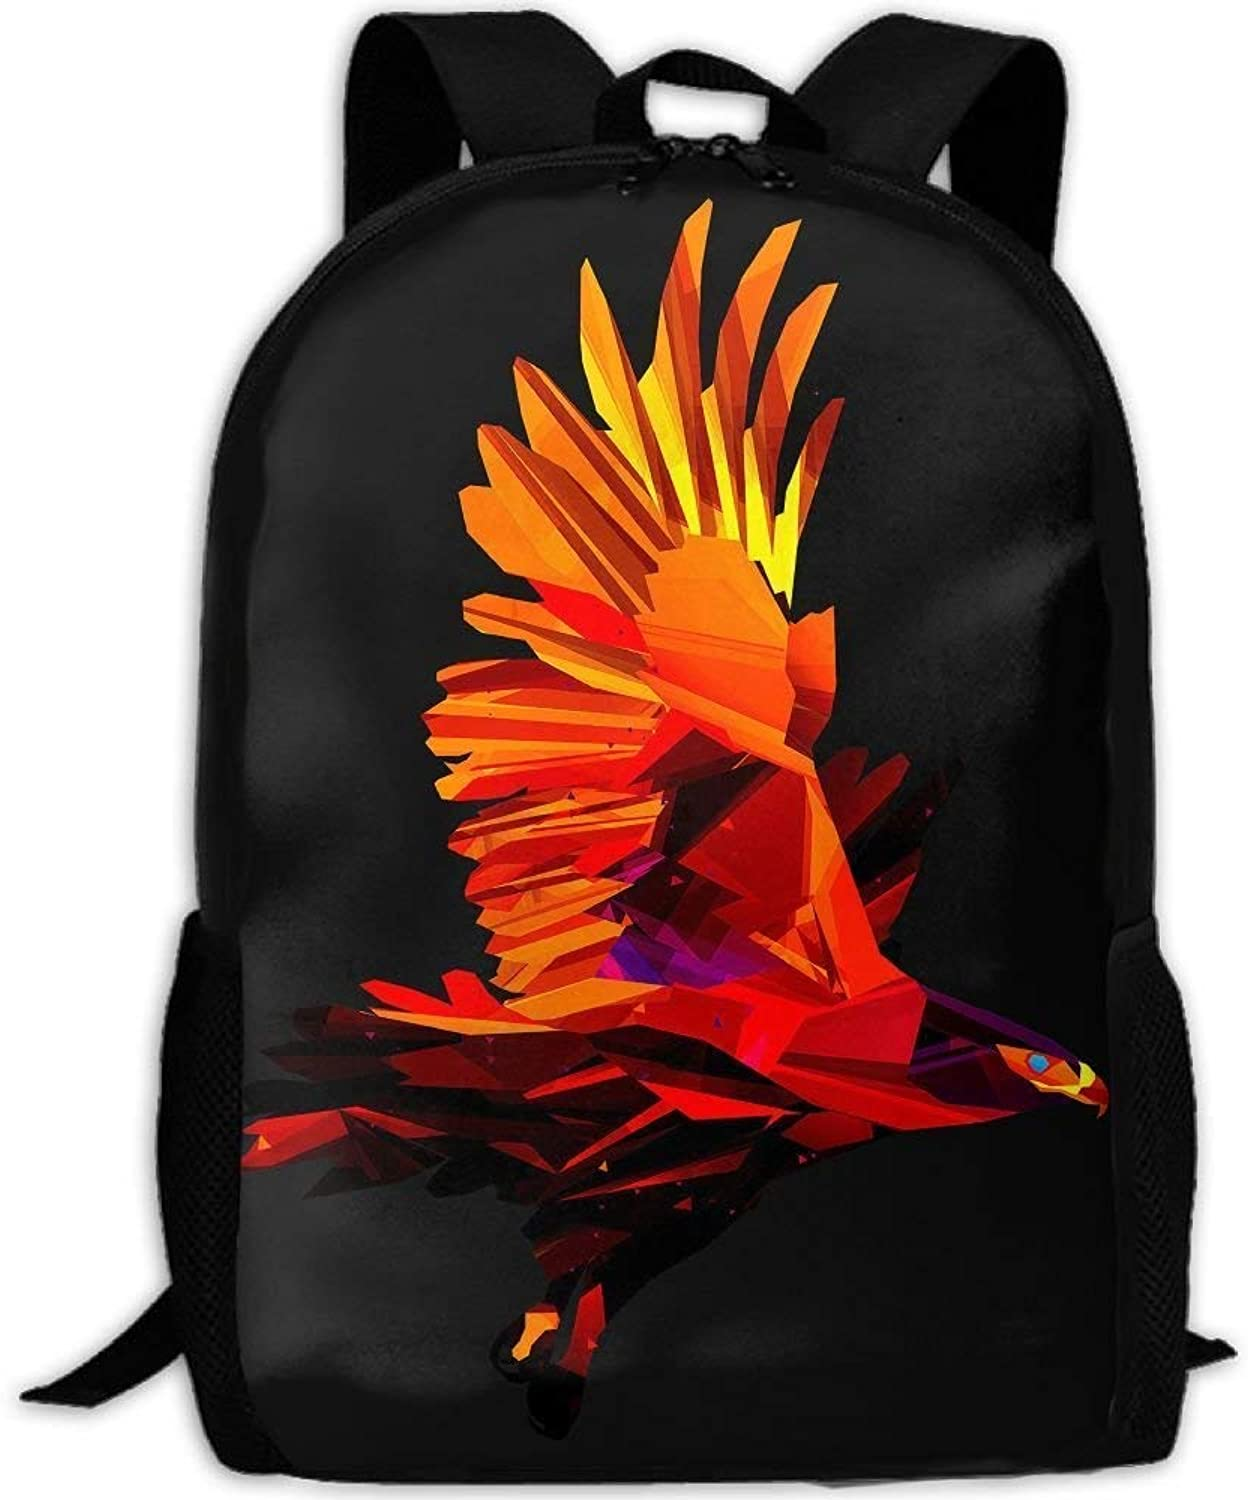 Backpack for Adults Hiking Geometry Eagle Shape Durable Travel